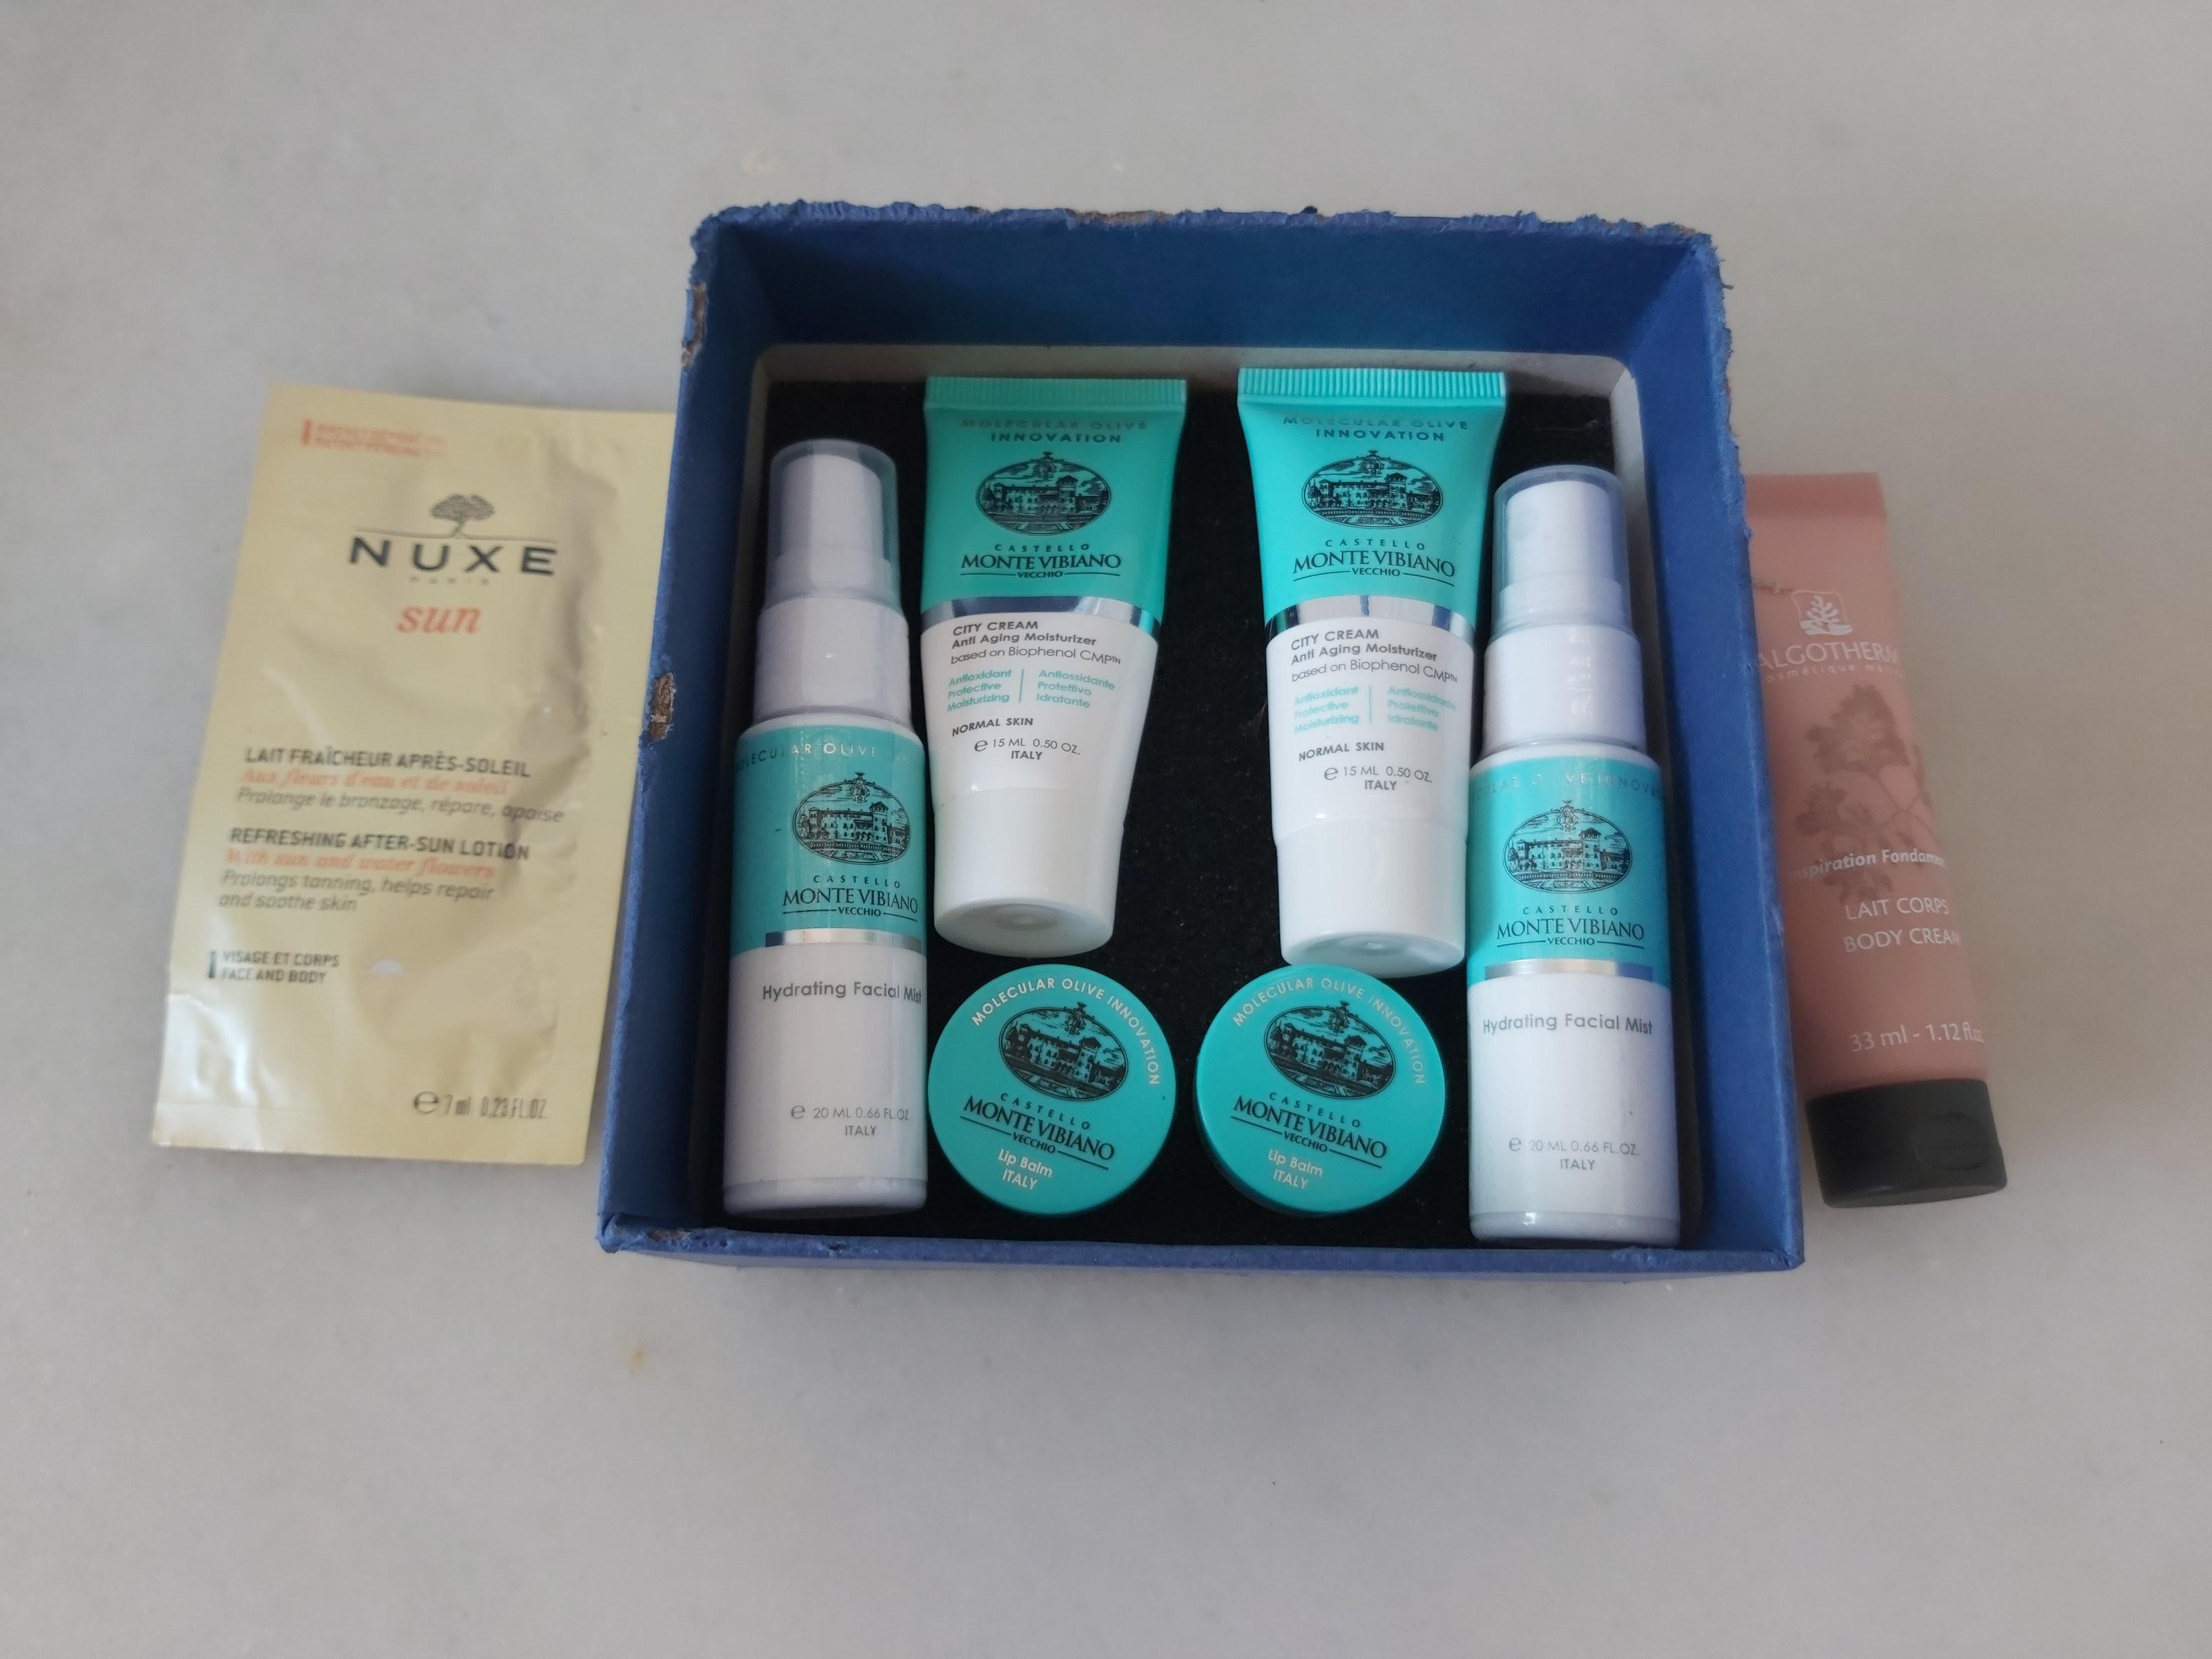 New Luxury European Skincare Gift Set Italian Monte Vibiano 6 2 Pc Gift Set Nuxe Algotherme Health Beauty Face Skin Care On Carousell